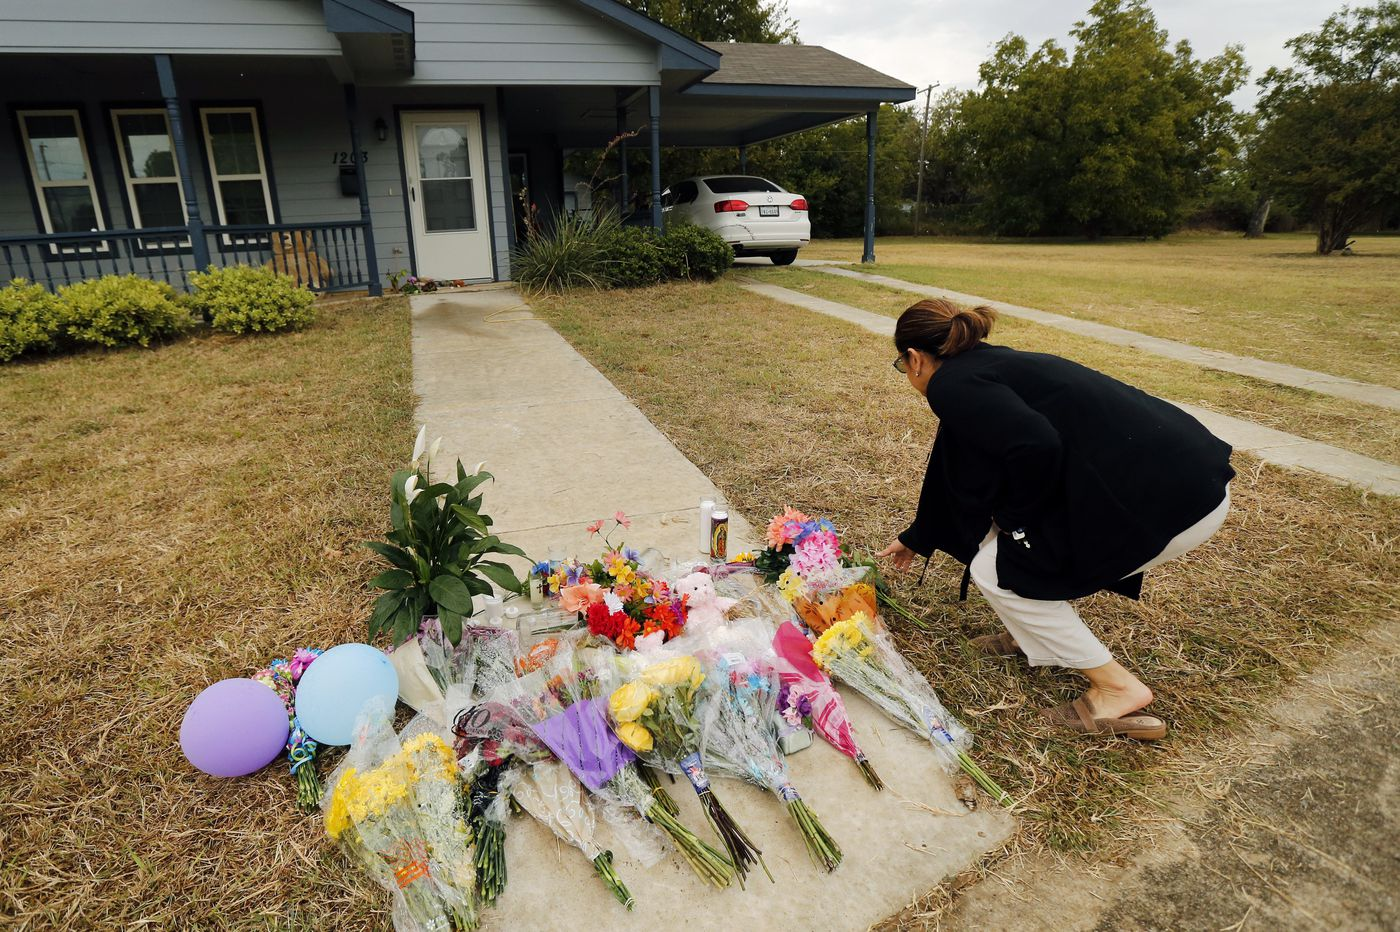 Atatiana Jefferson pointed gun at window before Fort Worth officer killed her, nephew told authorities